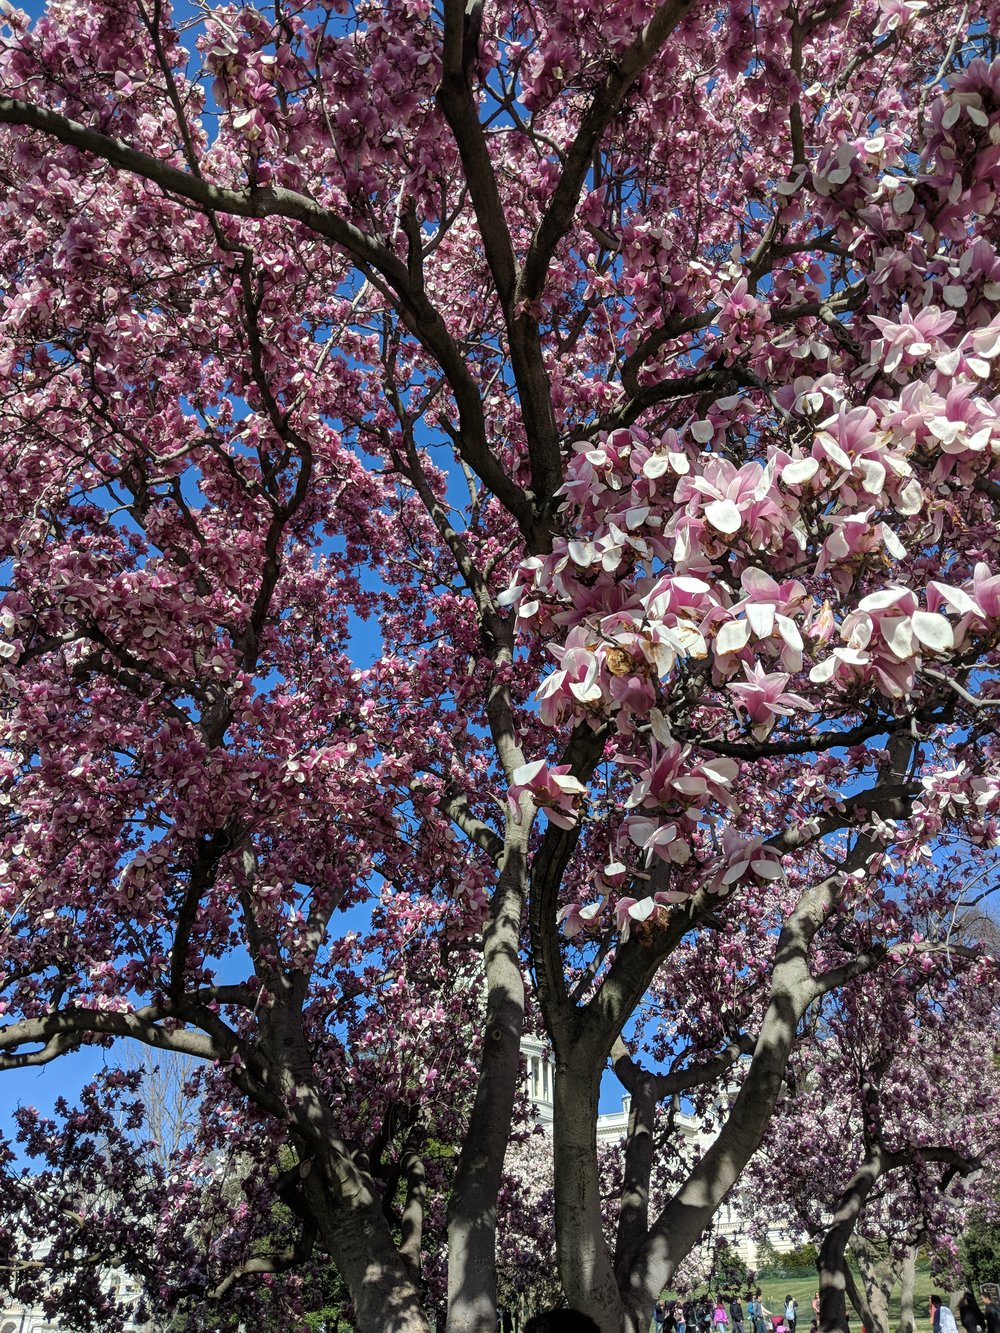 washington dc cherry blossoms 2018 cherry blossom festival.jpg